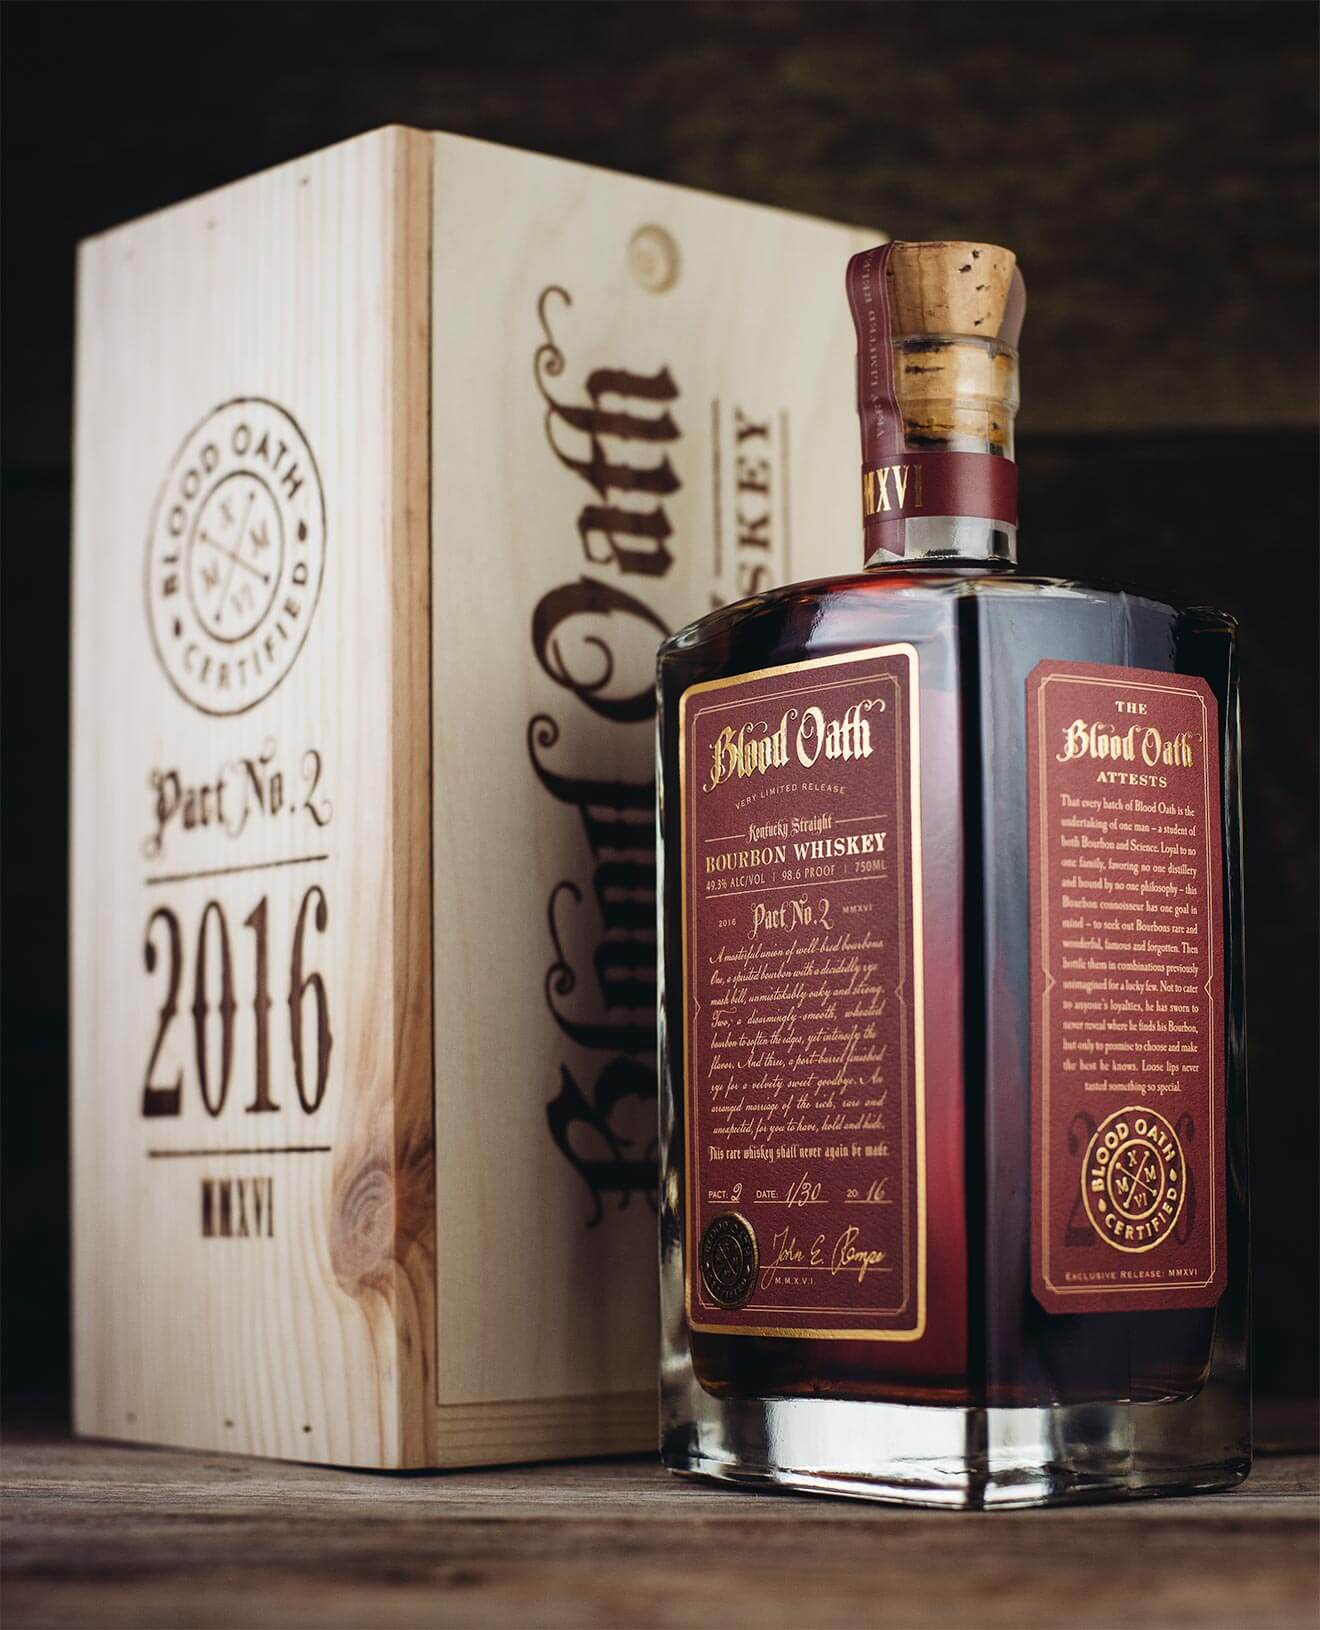 Blood Oath Pact No. 2, Bottle and Packaging, featured brands